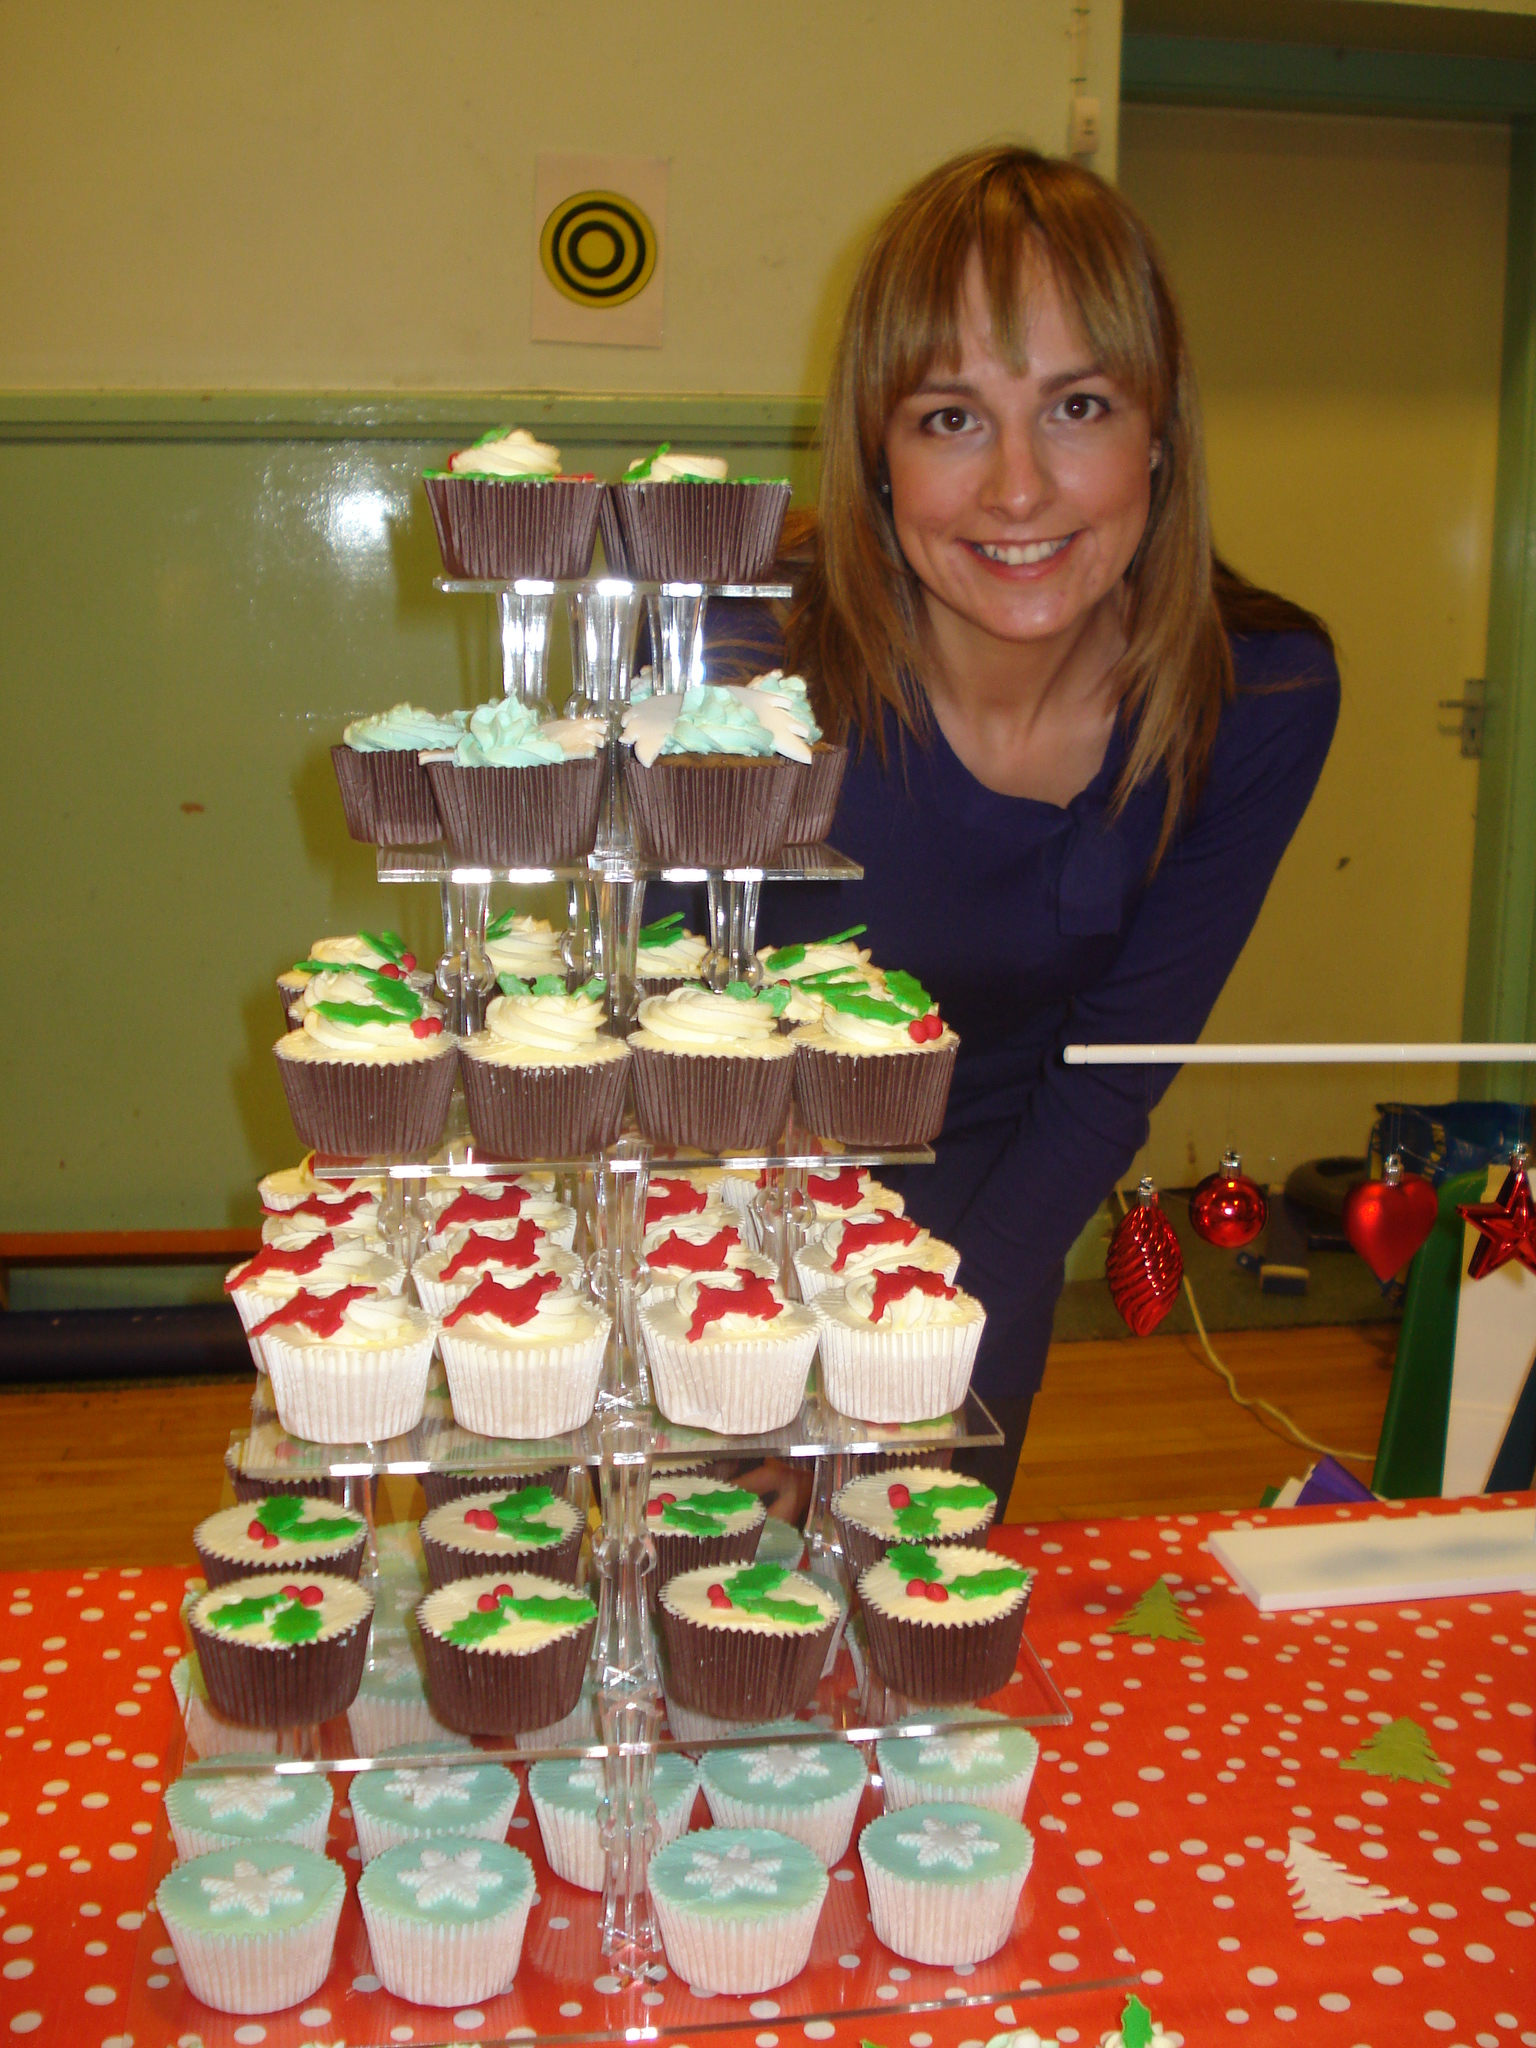 Lizzie with her Christmas cupcakes